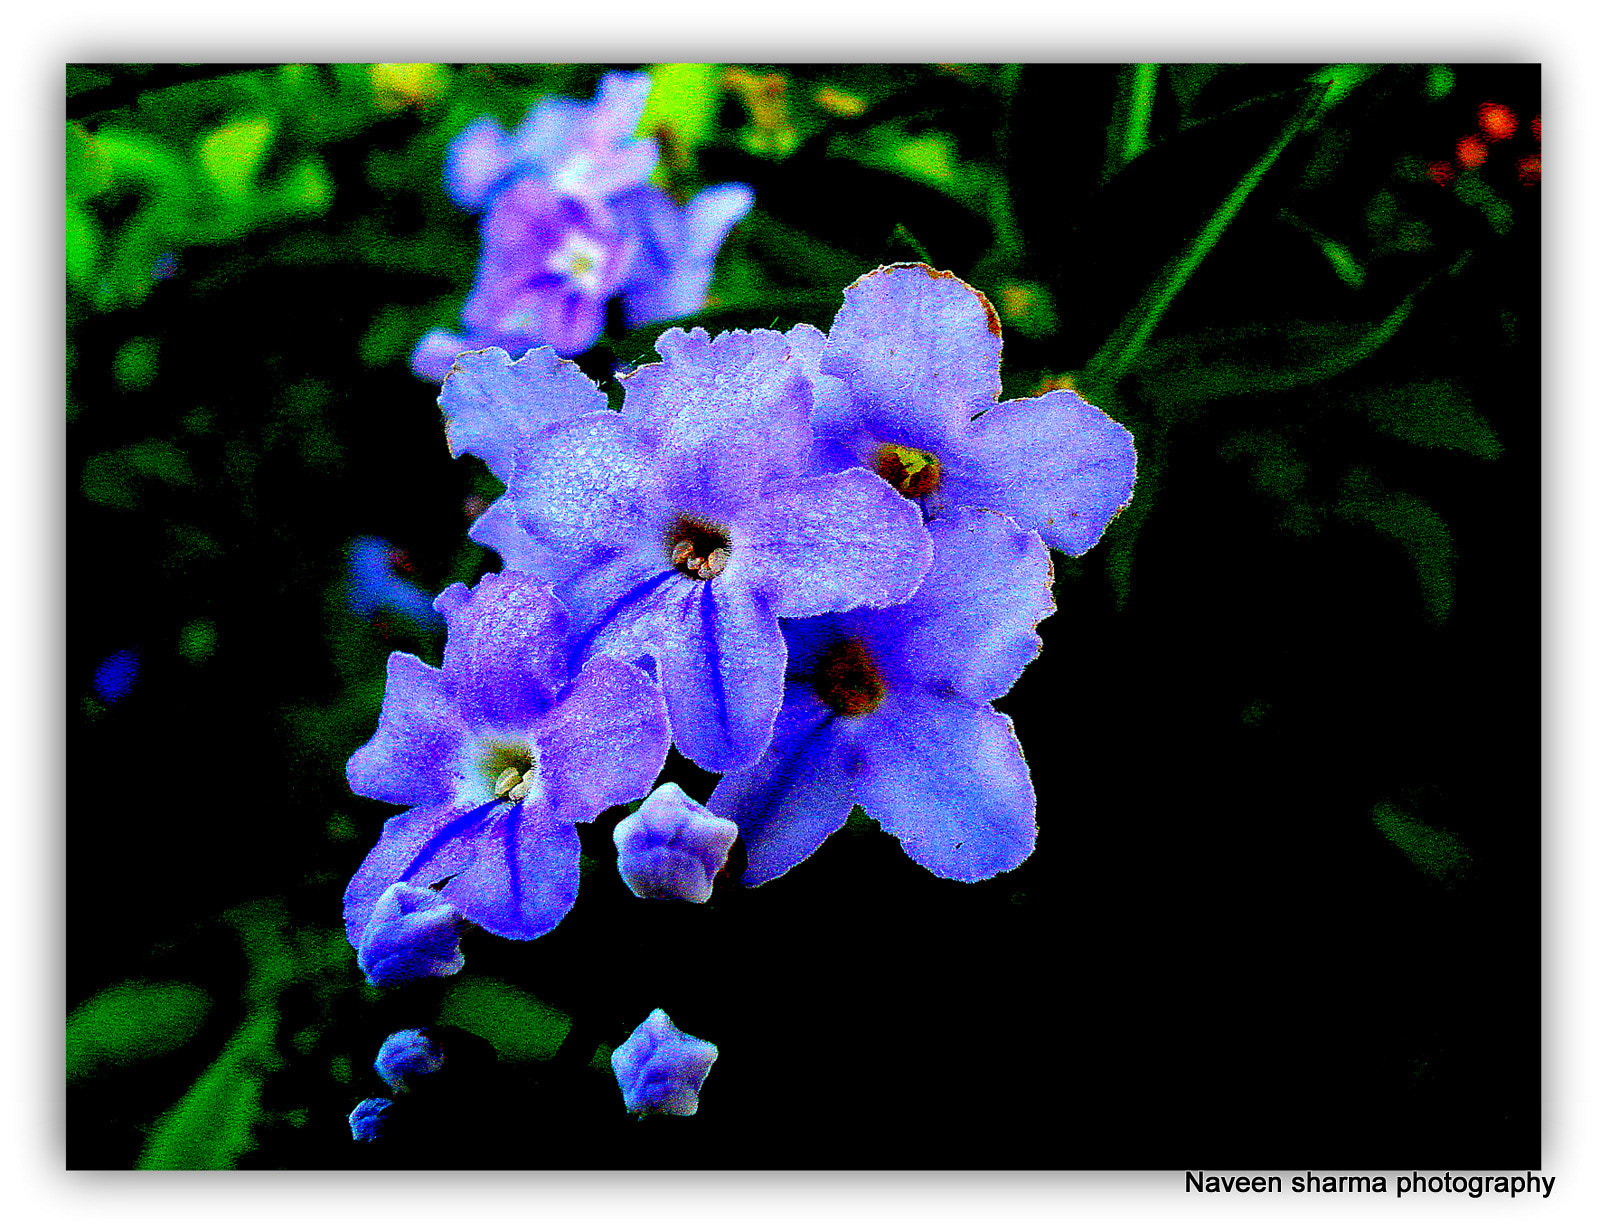 Photograph VIOLET GLAMOUR by naveen sharma on 500px